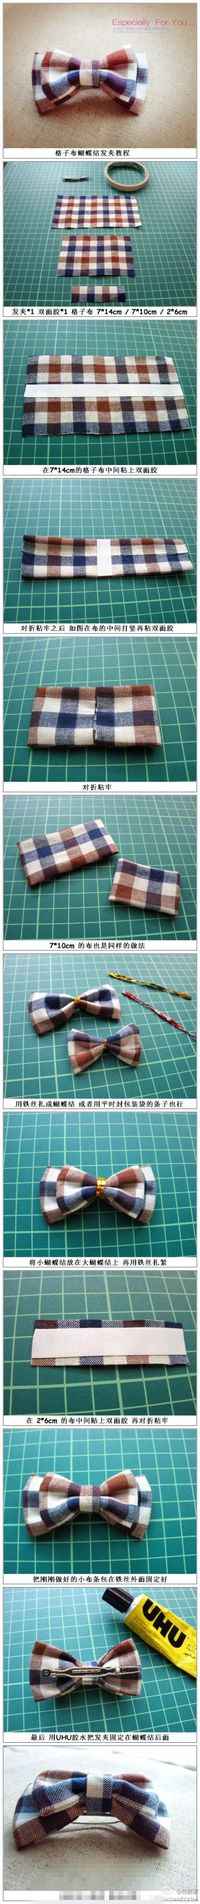 Turn into Bowtie instead of bow for hair.